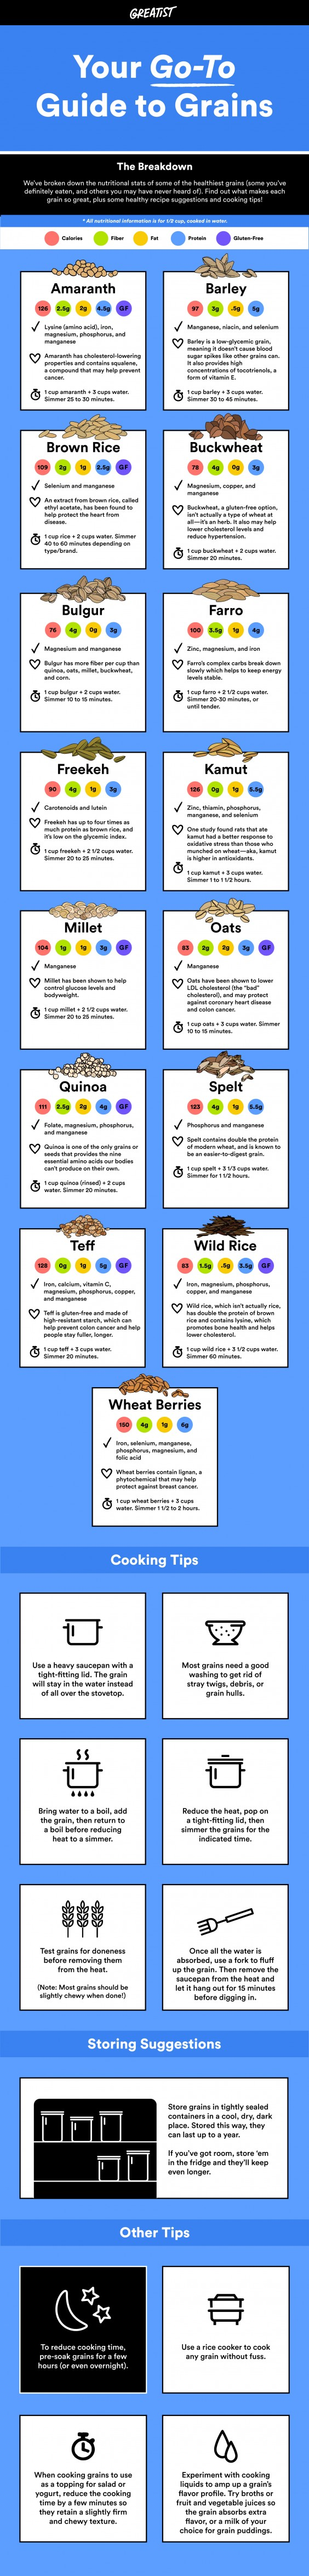 Go-To Guide To Grains